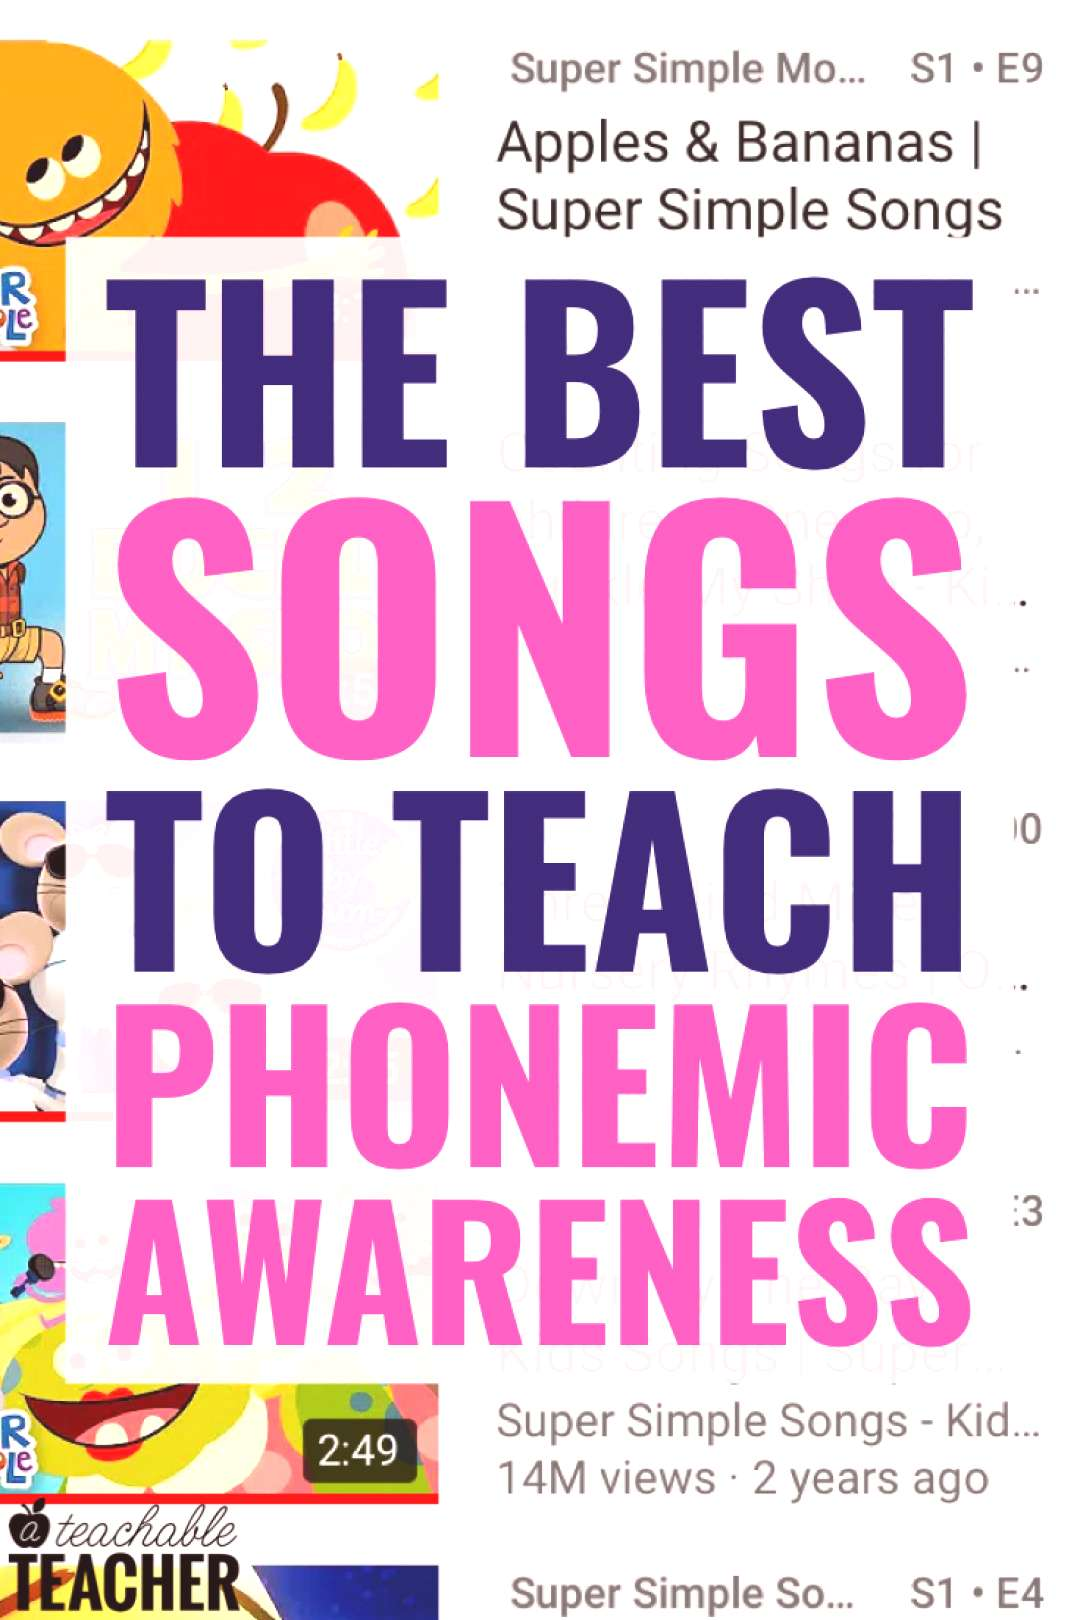 Songs are an excellent way to build phonemic awareness skills because they focus on the task of lis